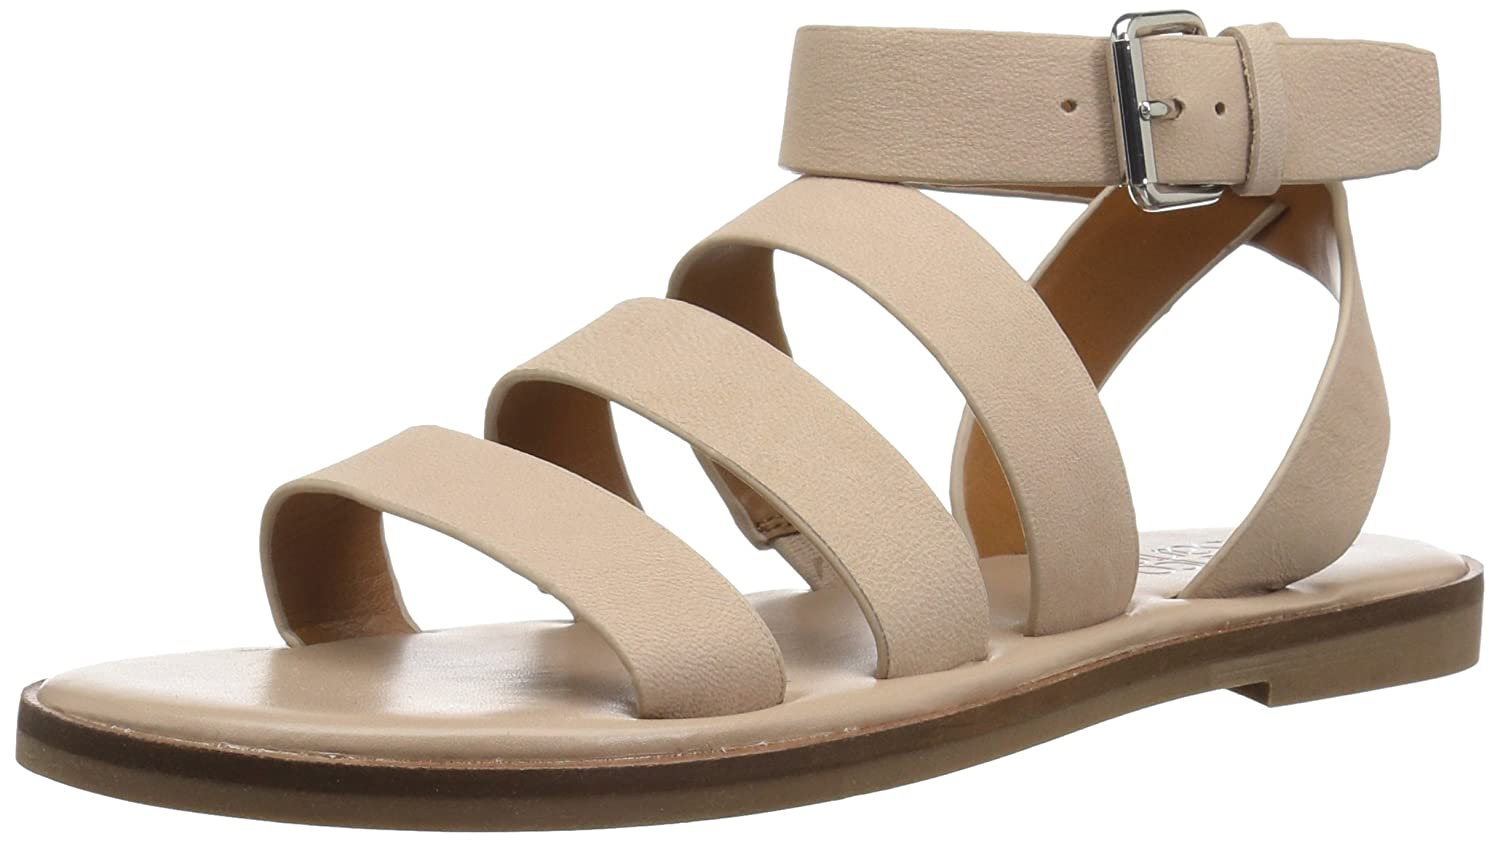 Franco Sarto Women's Kyson Flat Sandal B078VCJHTP 11 B(M) US|Light Bone